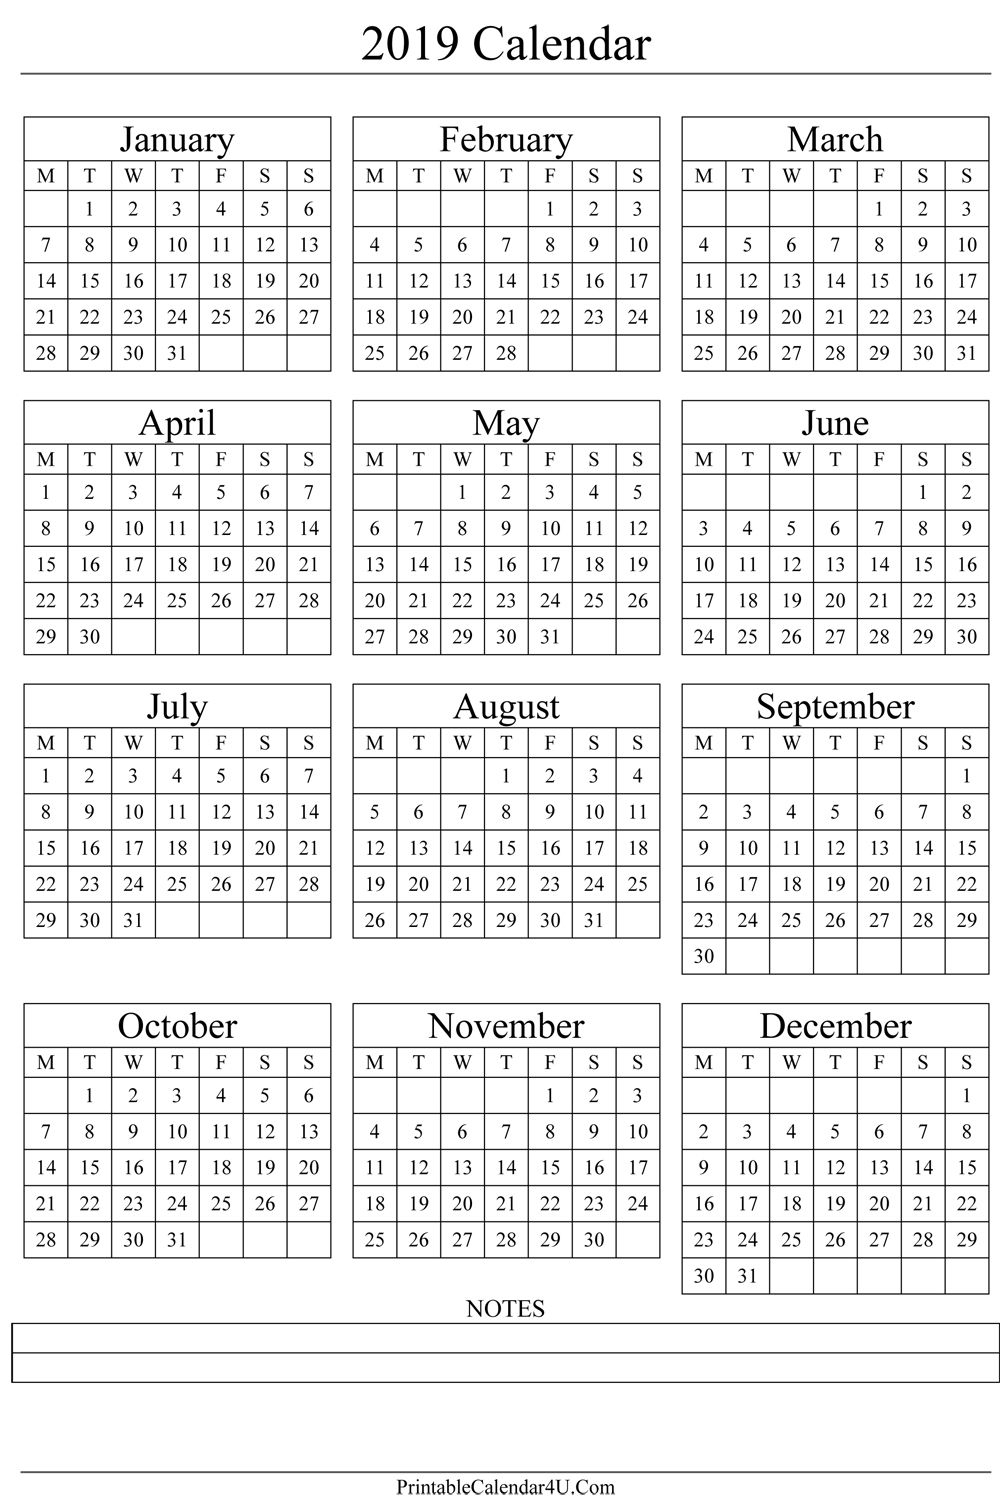 2019 Yearly Calendar 8.5X11 | Calendar Template Printable